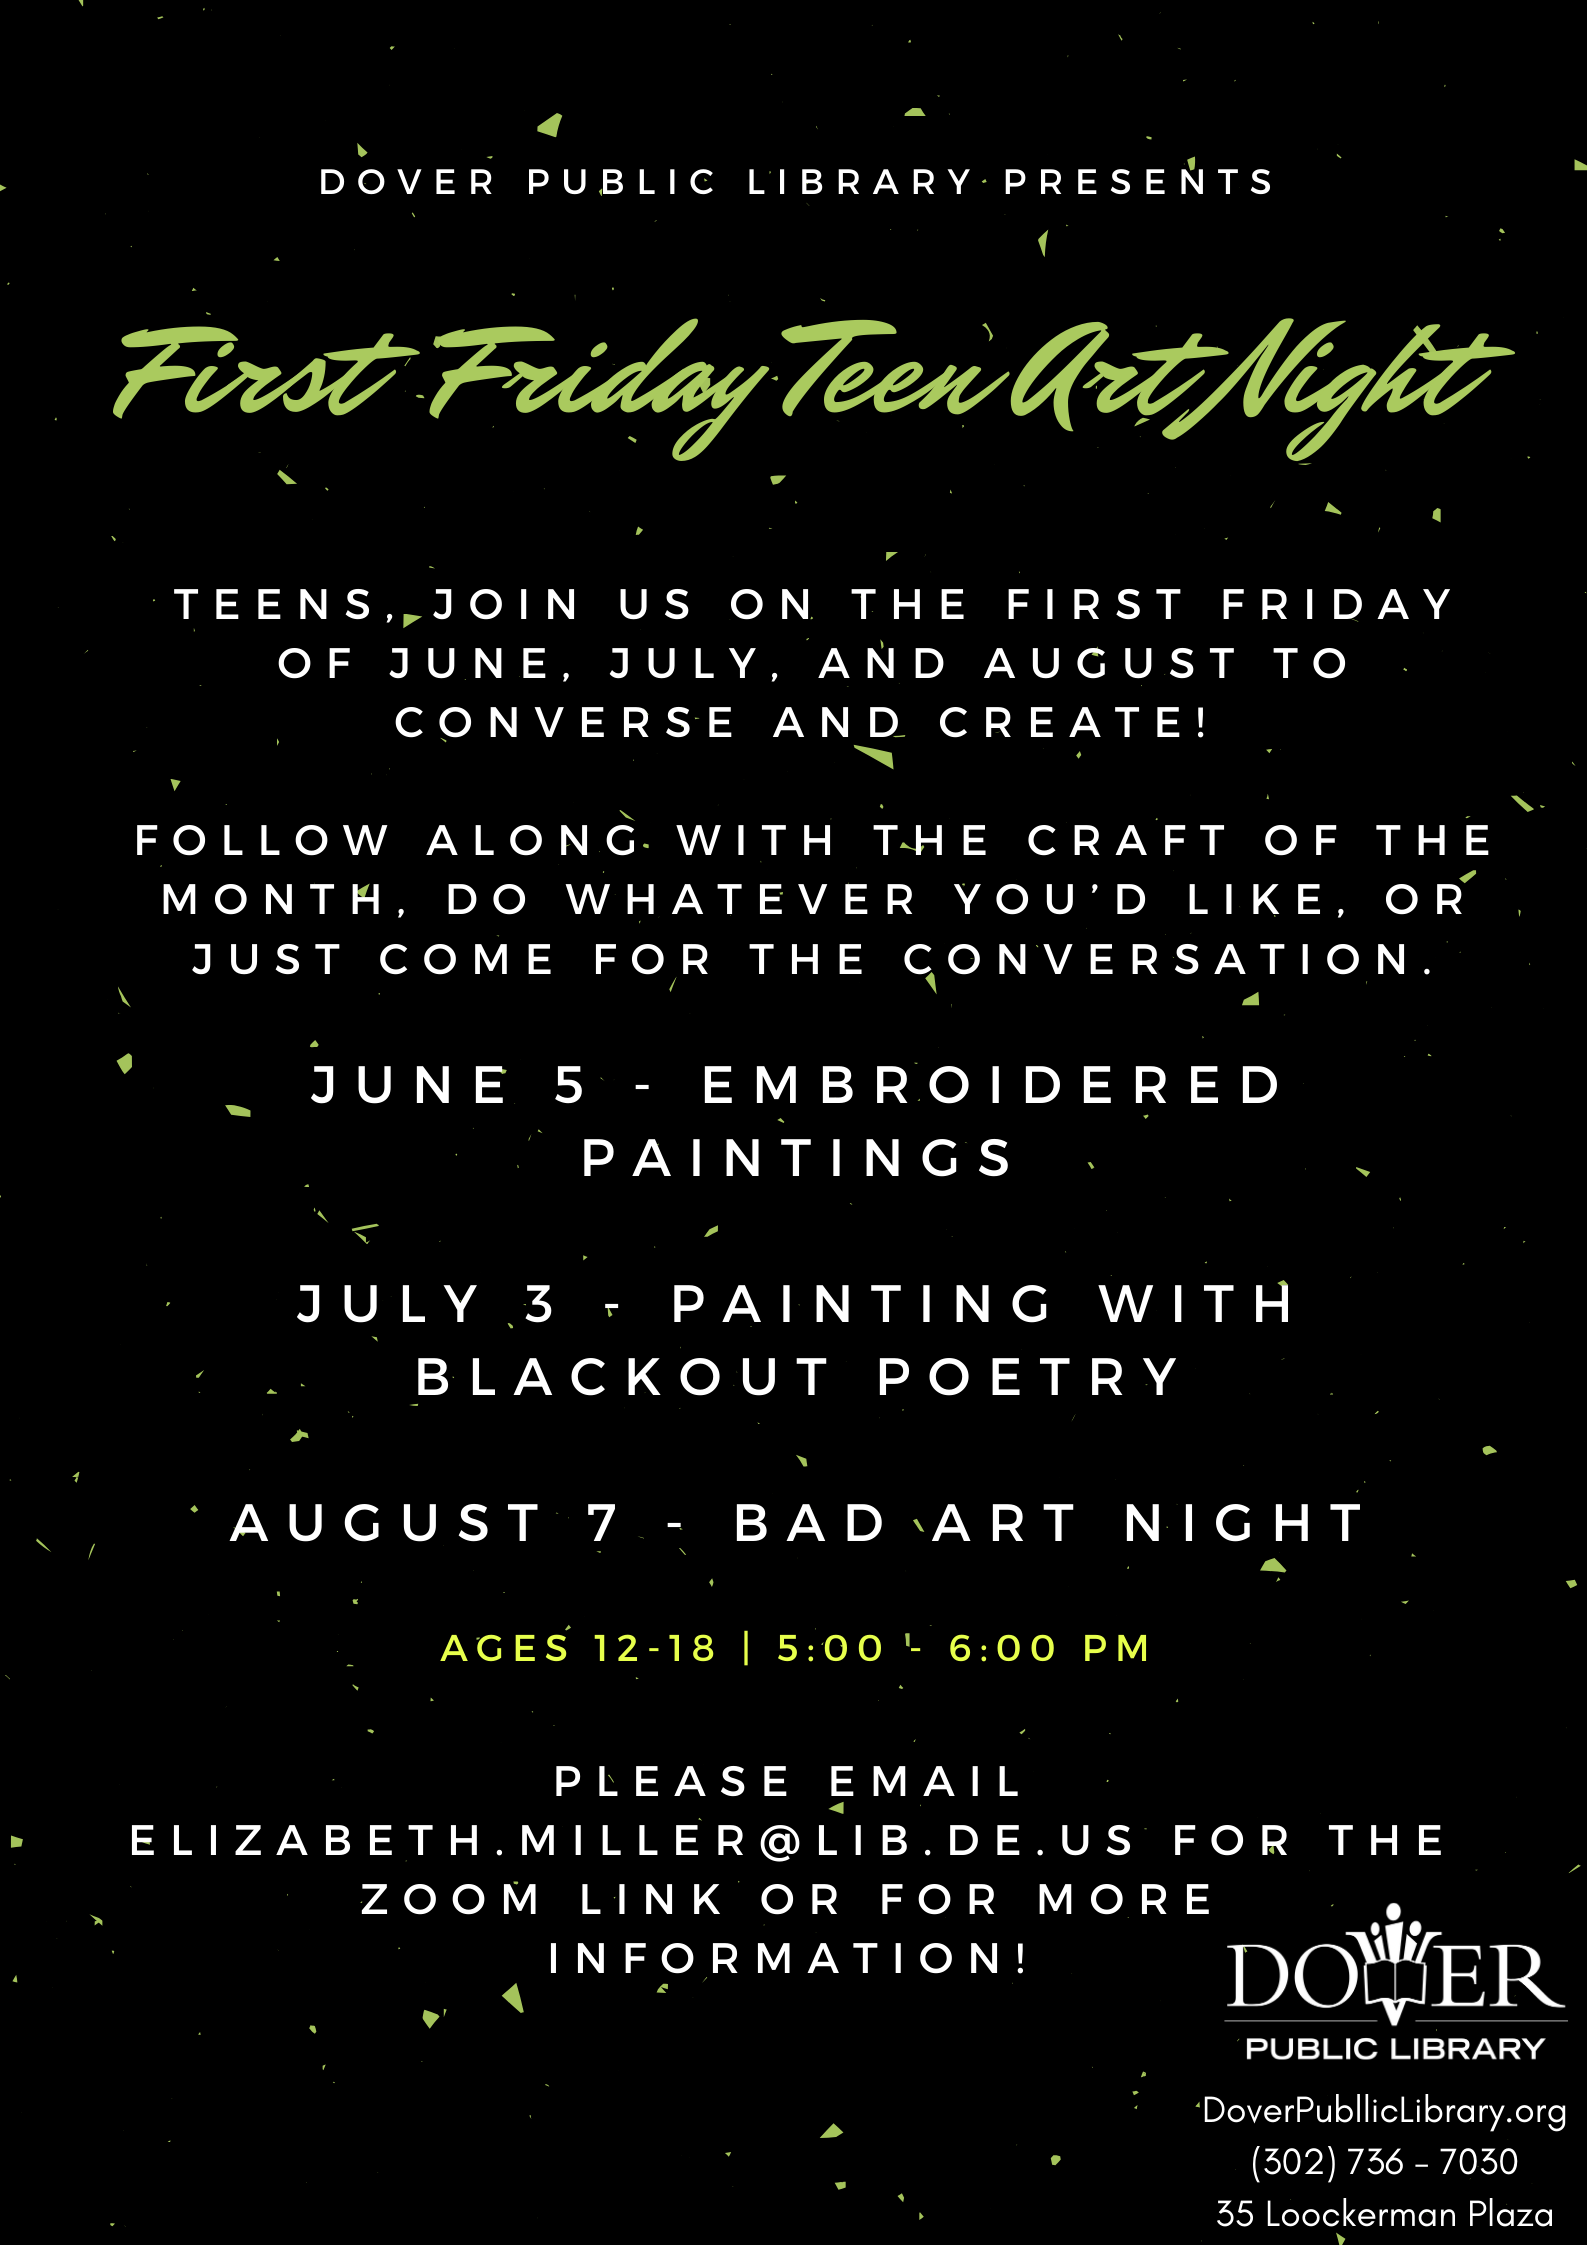 CANCELLED - First Friday Teen Art Night with the Dover Public Library